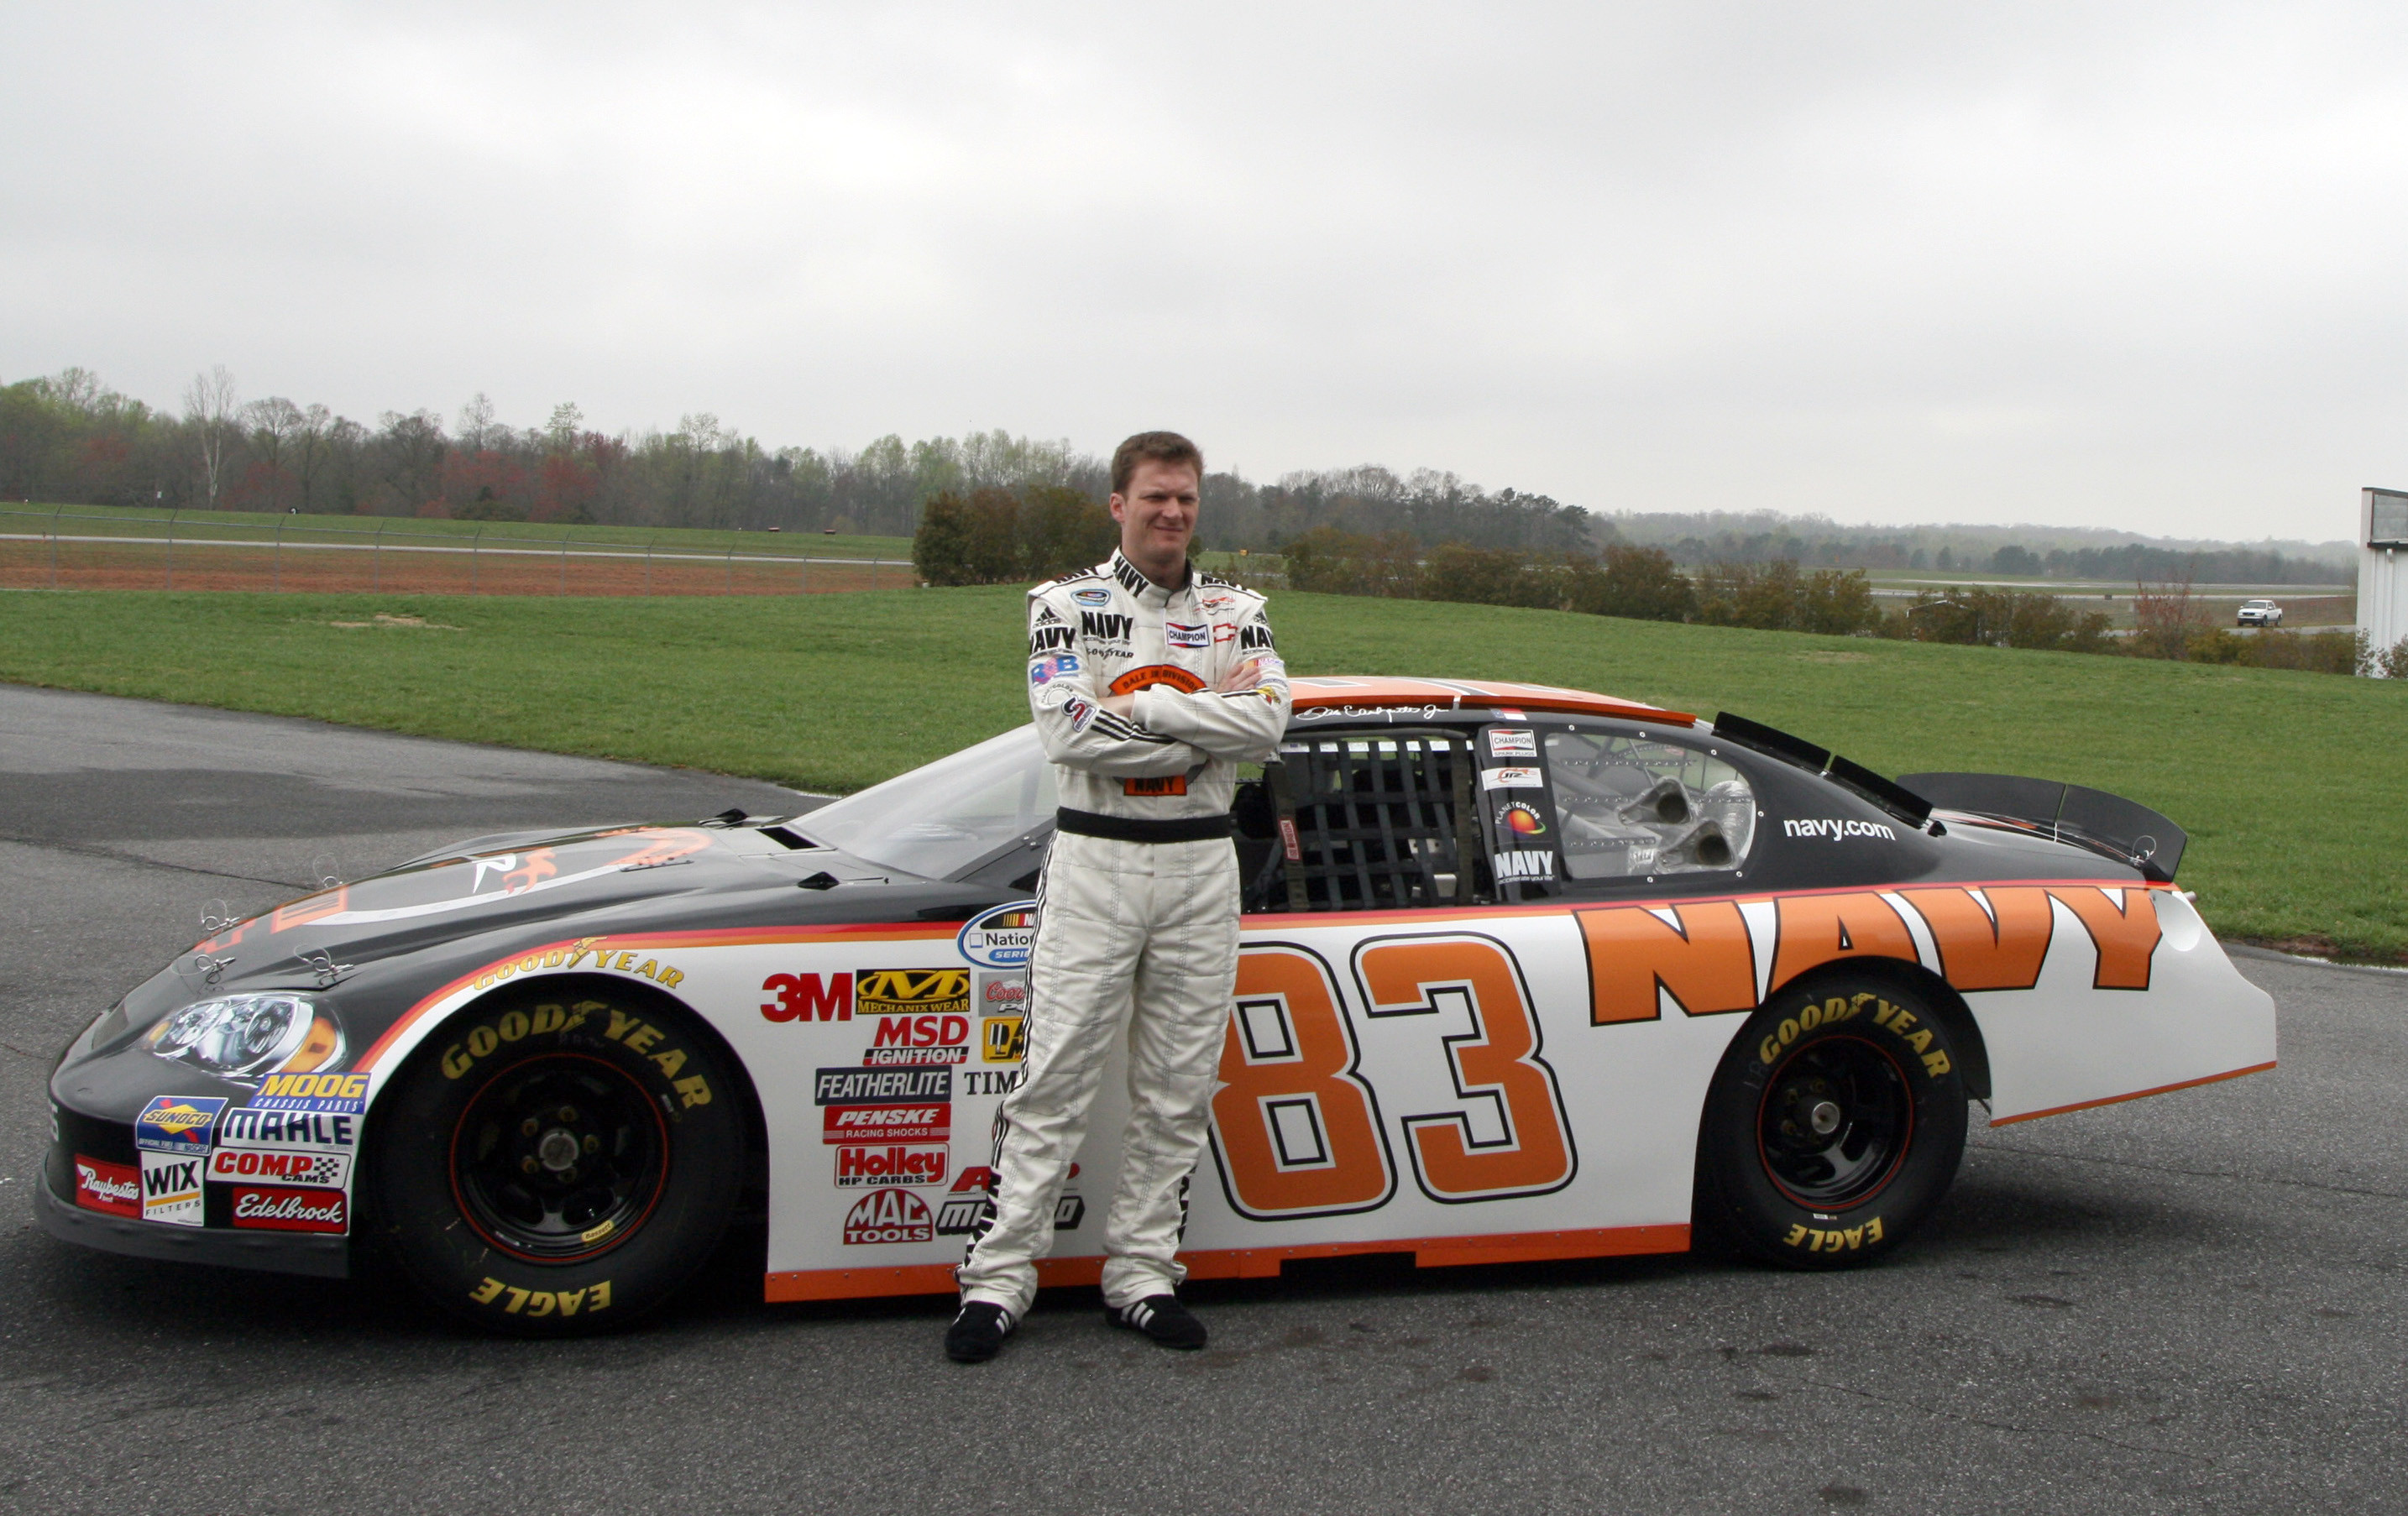 2868x1806 File:Dale Earnhardt Jr with Nationwide Series No 83 car.jpg